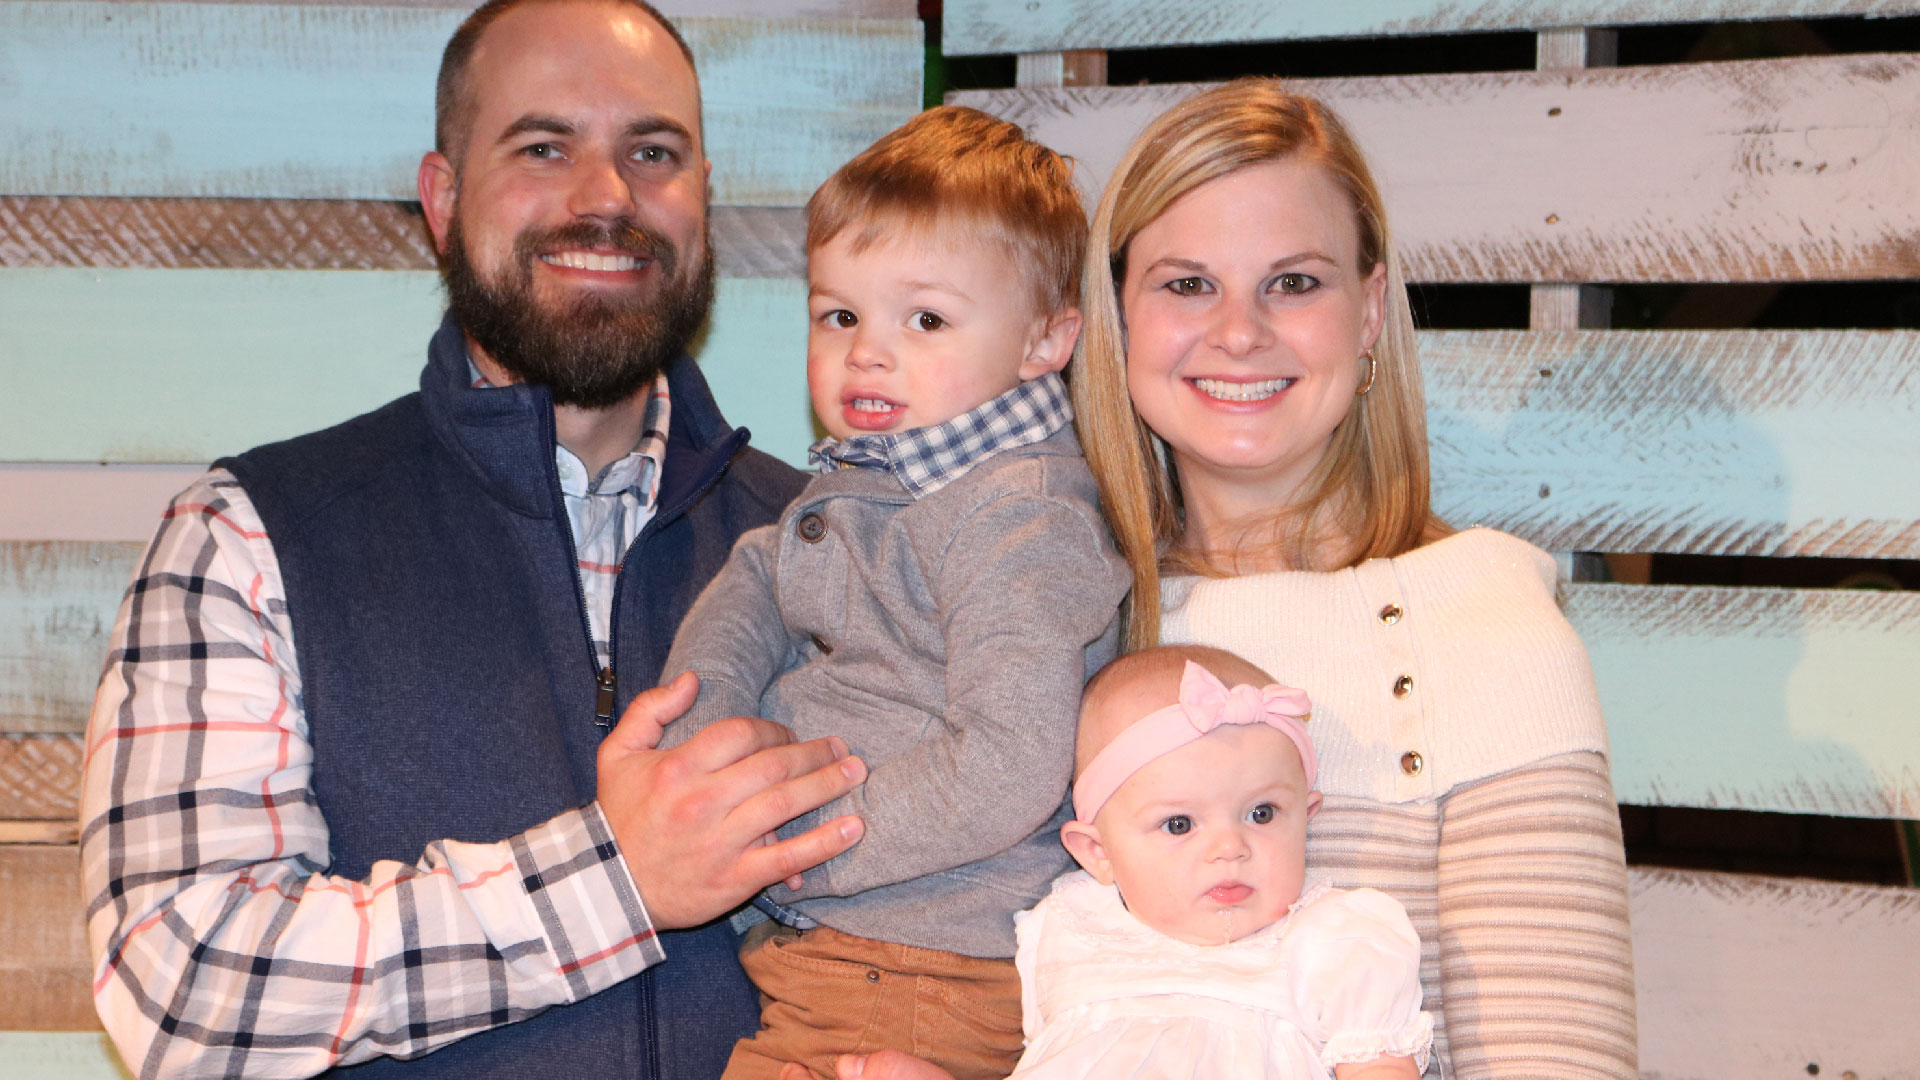 A family with two small children smiling for Brookwood Church parent dedication